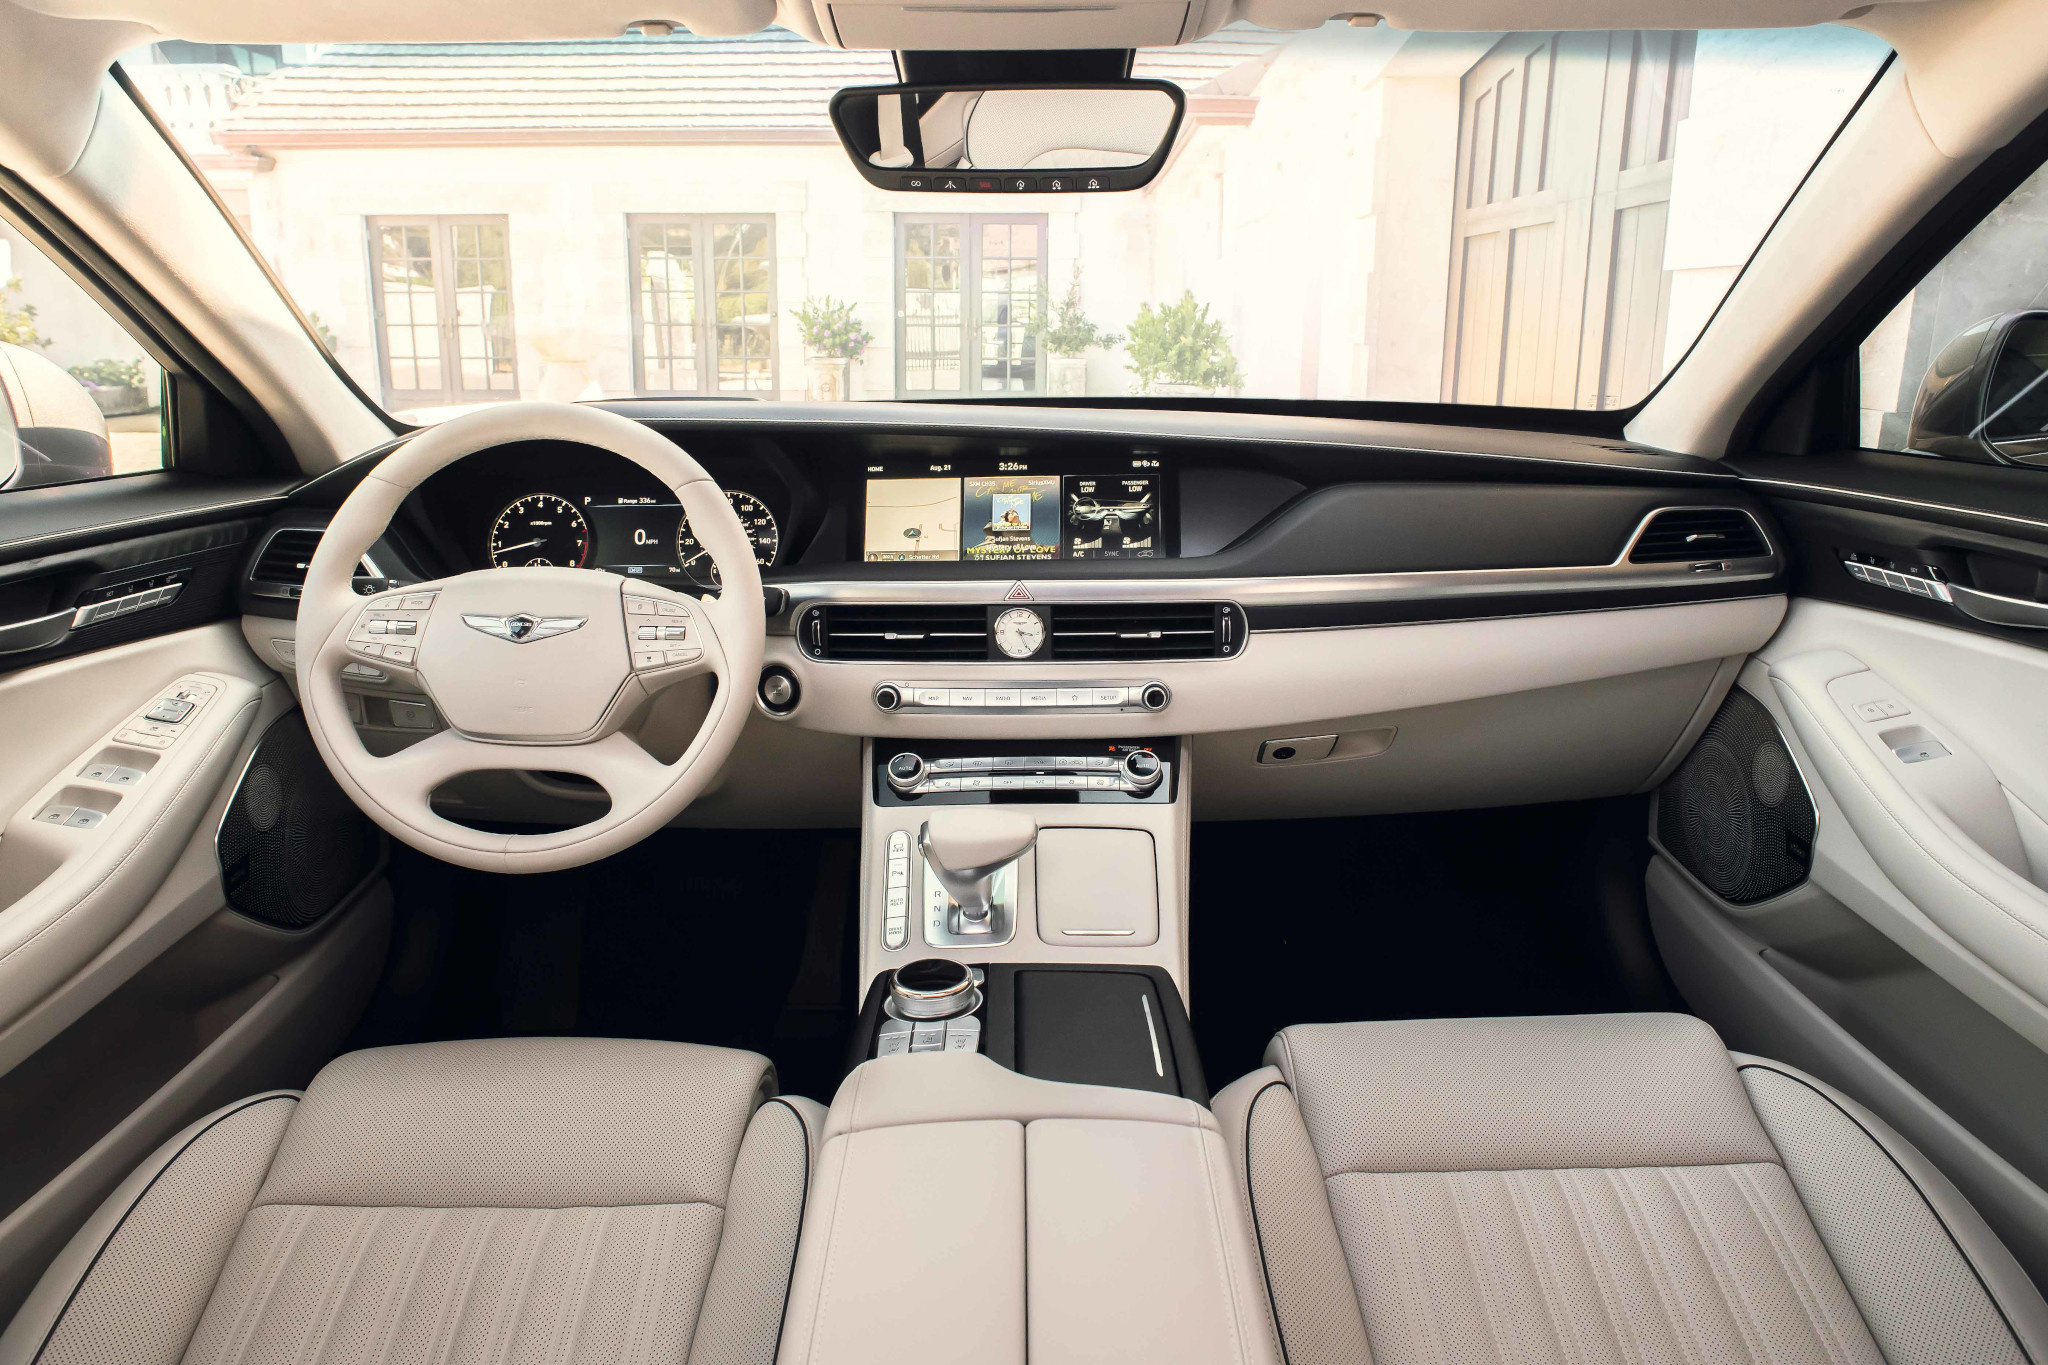 genesis-g90-2020-08-cockpit-shot--interior.jpg